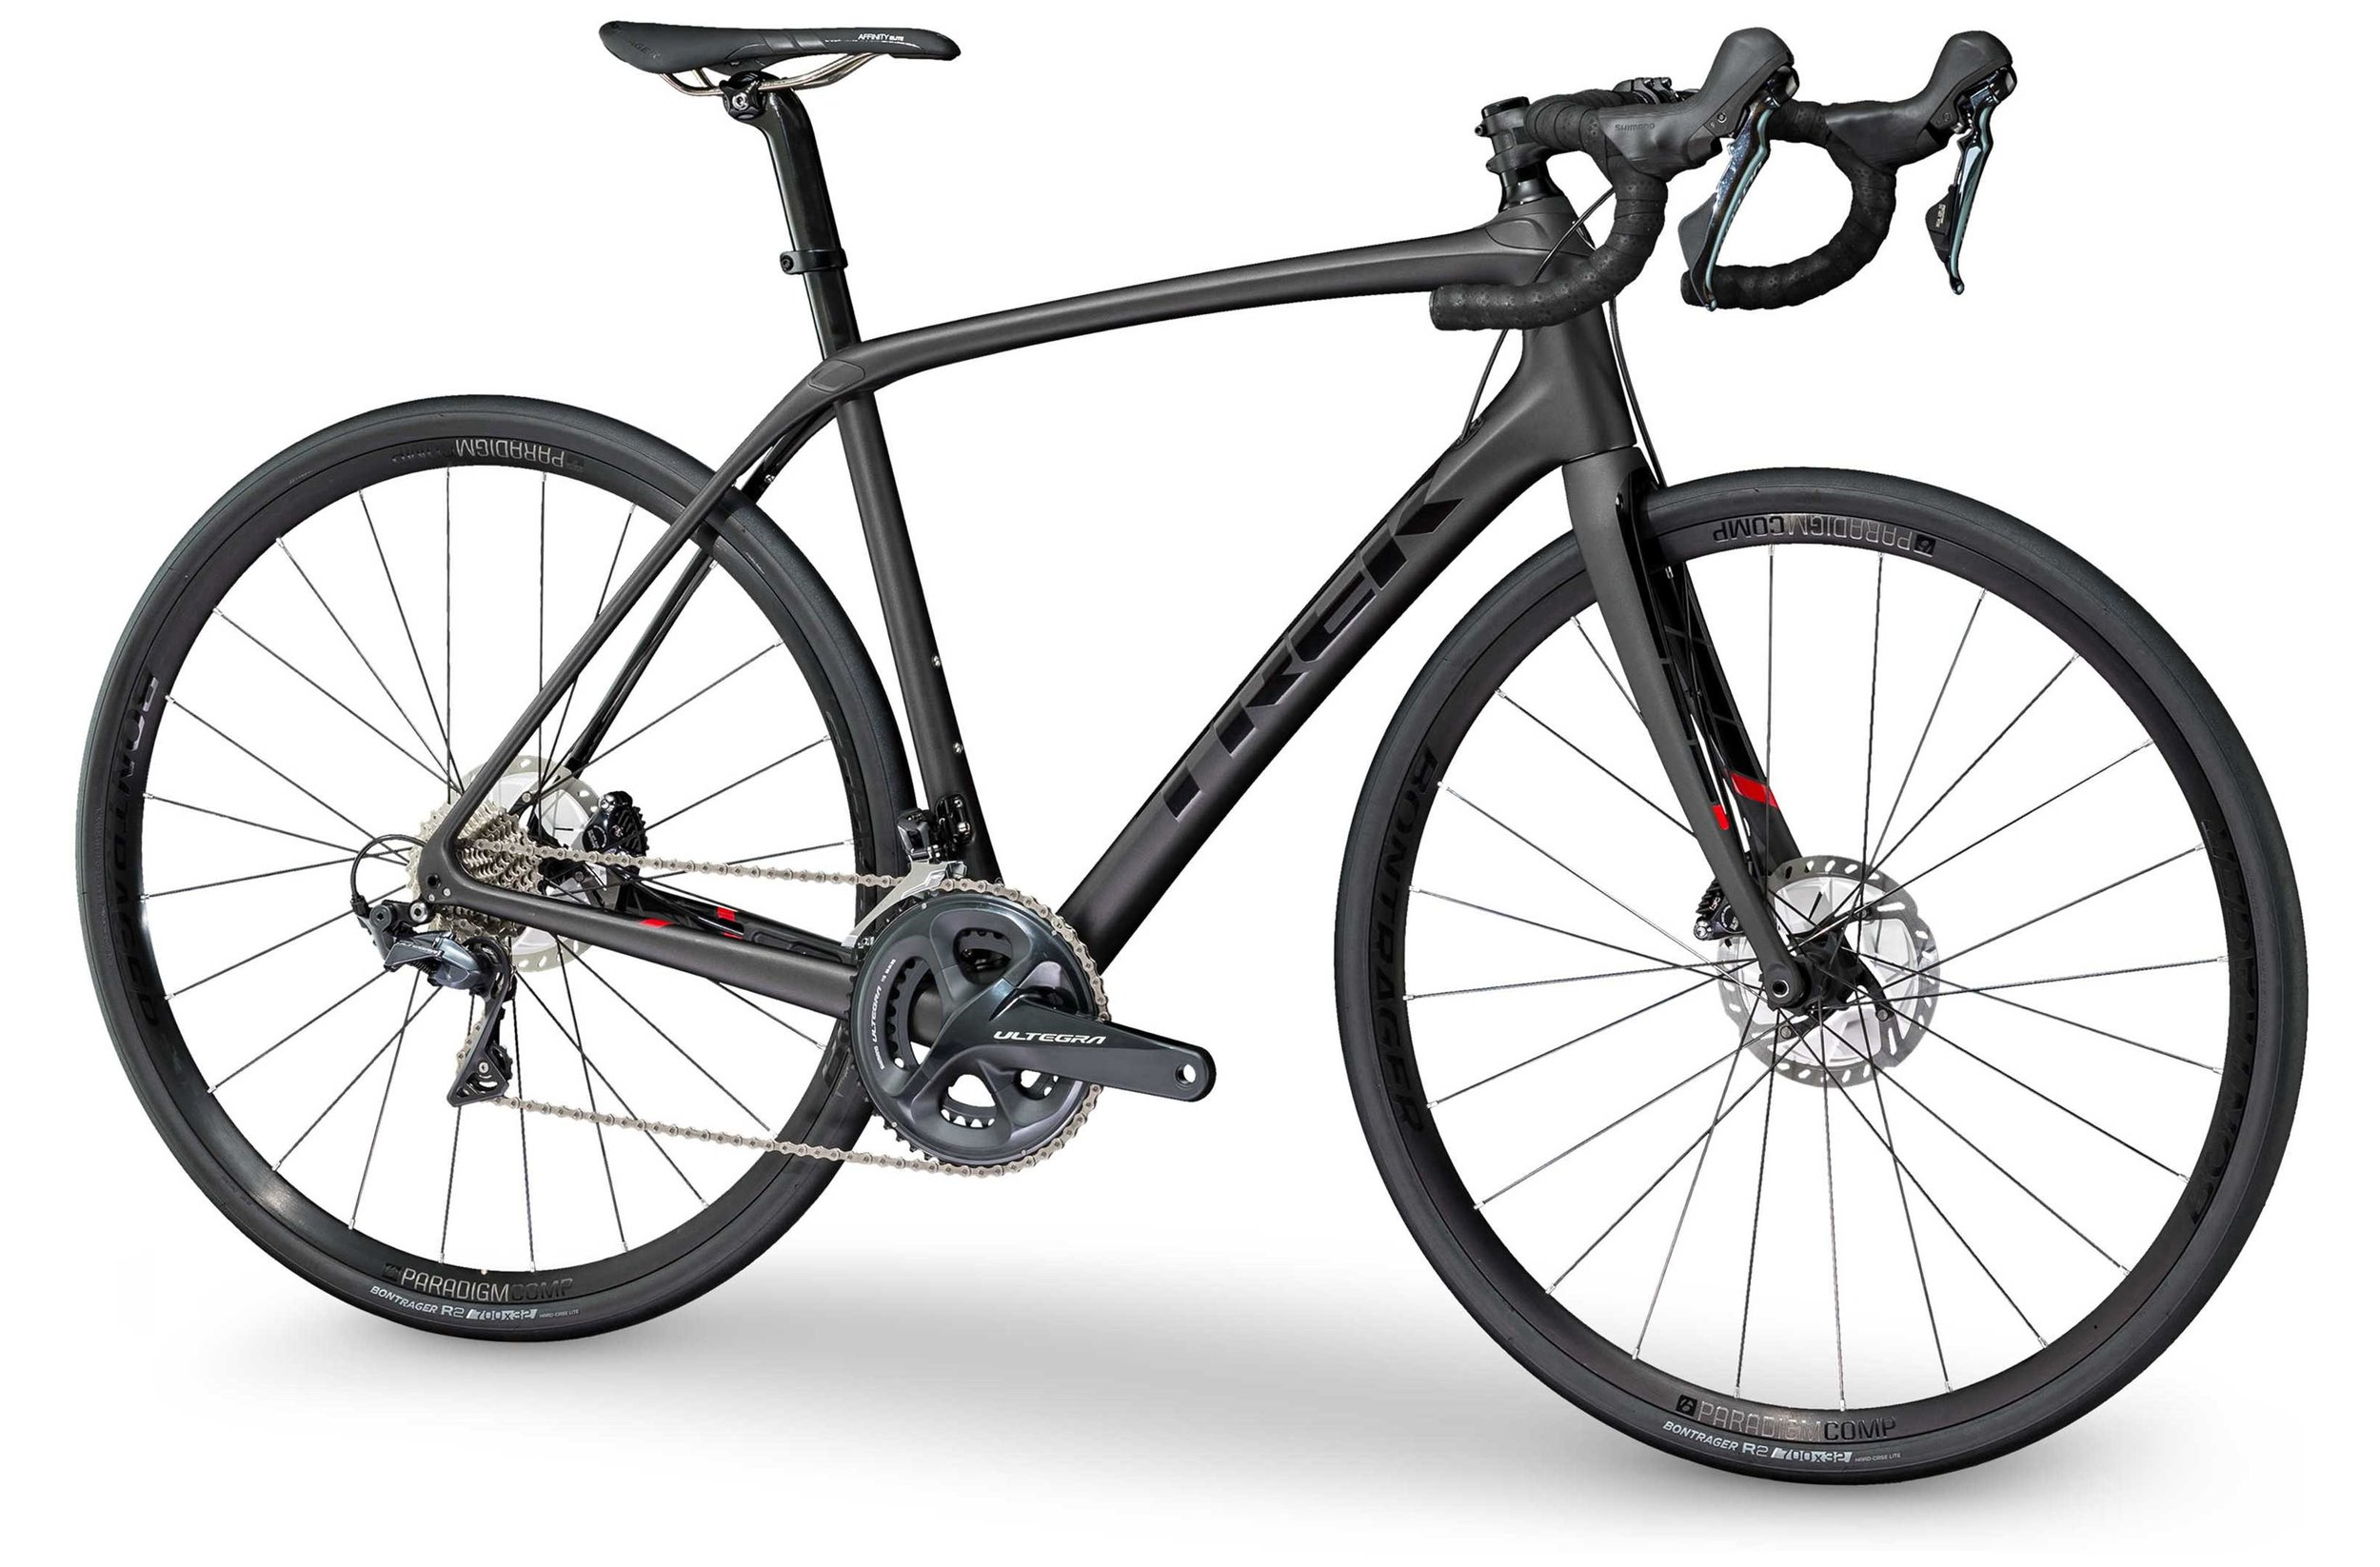 Trek Domane SL6 Disc Was £3999 - Now £2799